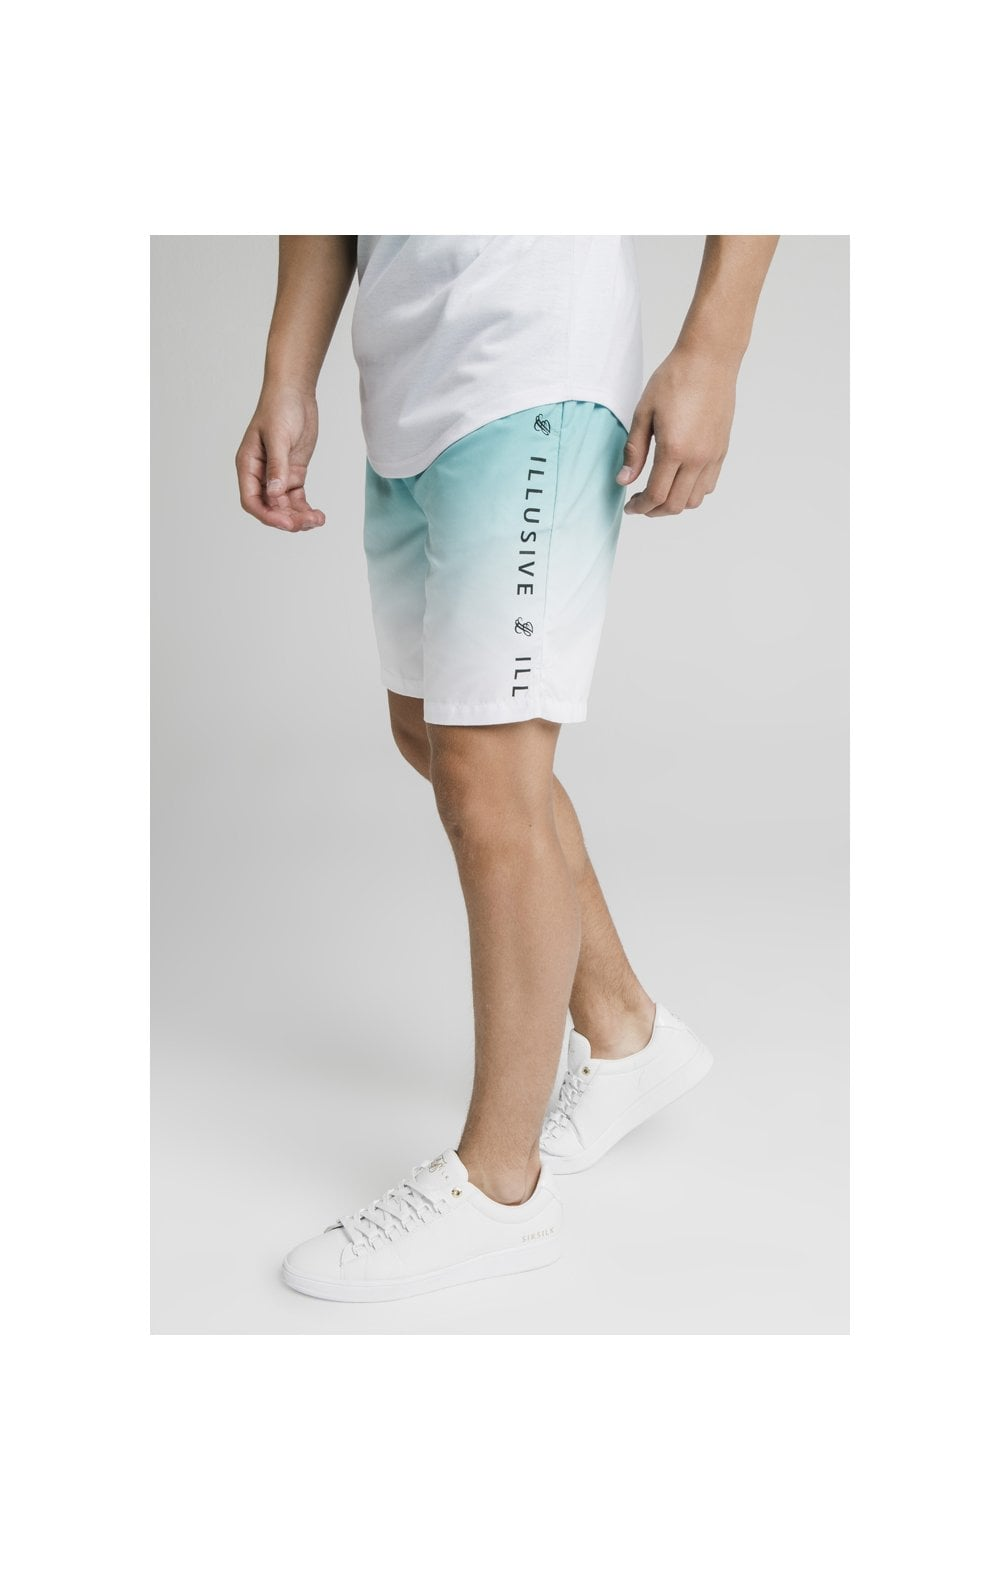 Load image into Gallery viewer, Illusive London Fade Swim Shorts - Teal & White